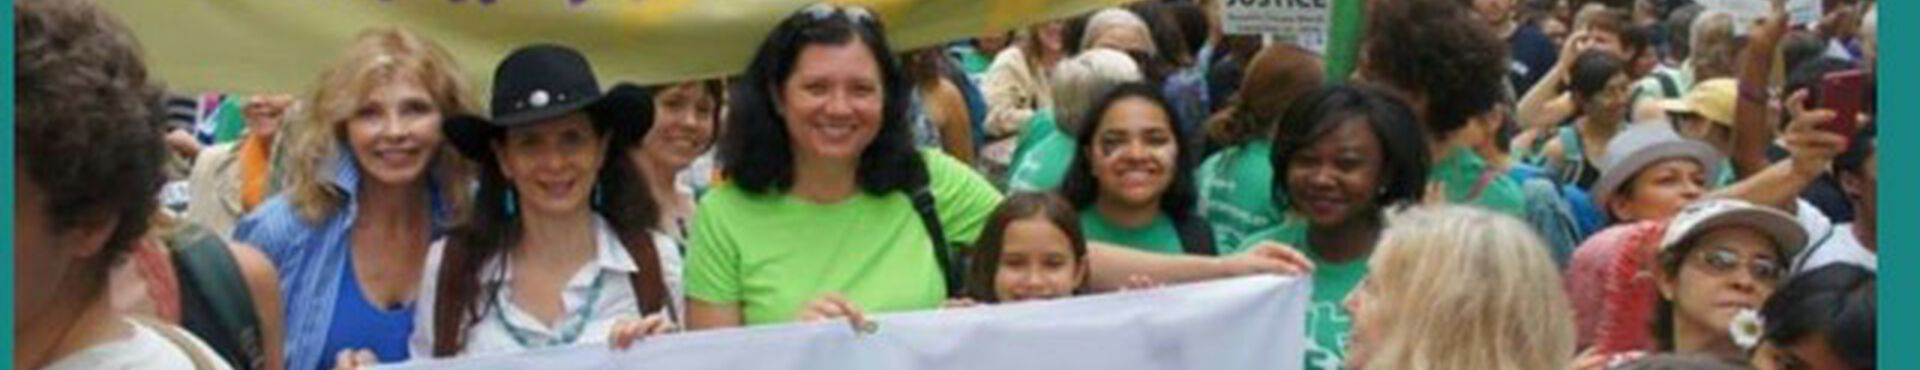 Banner - Women's Earth and Climate Action Network